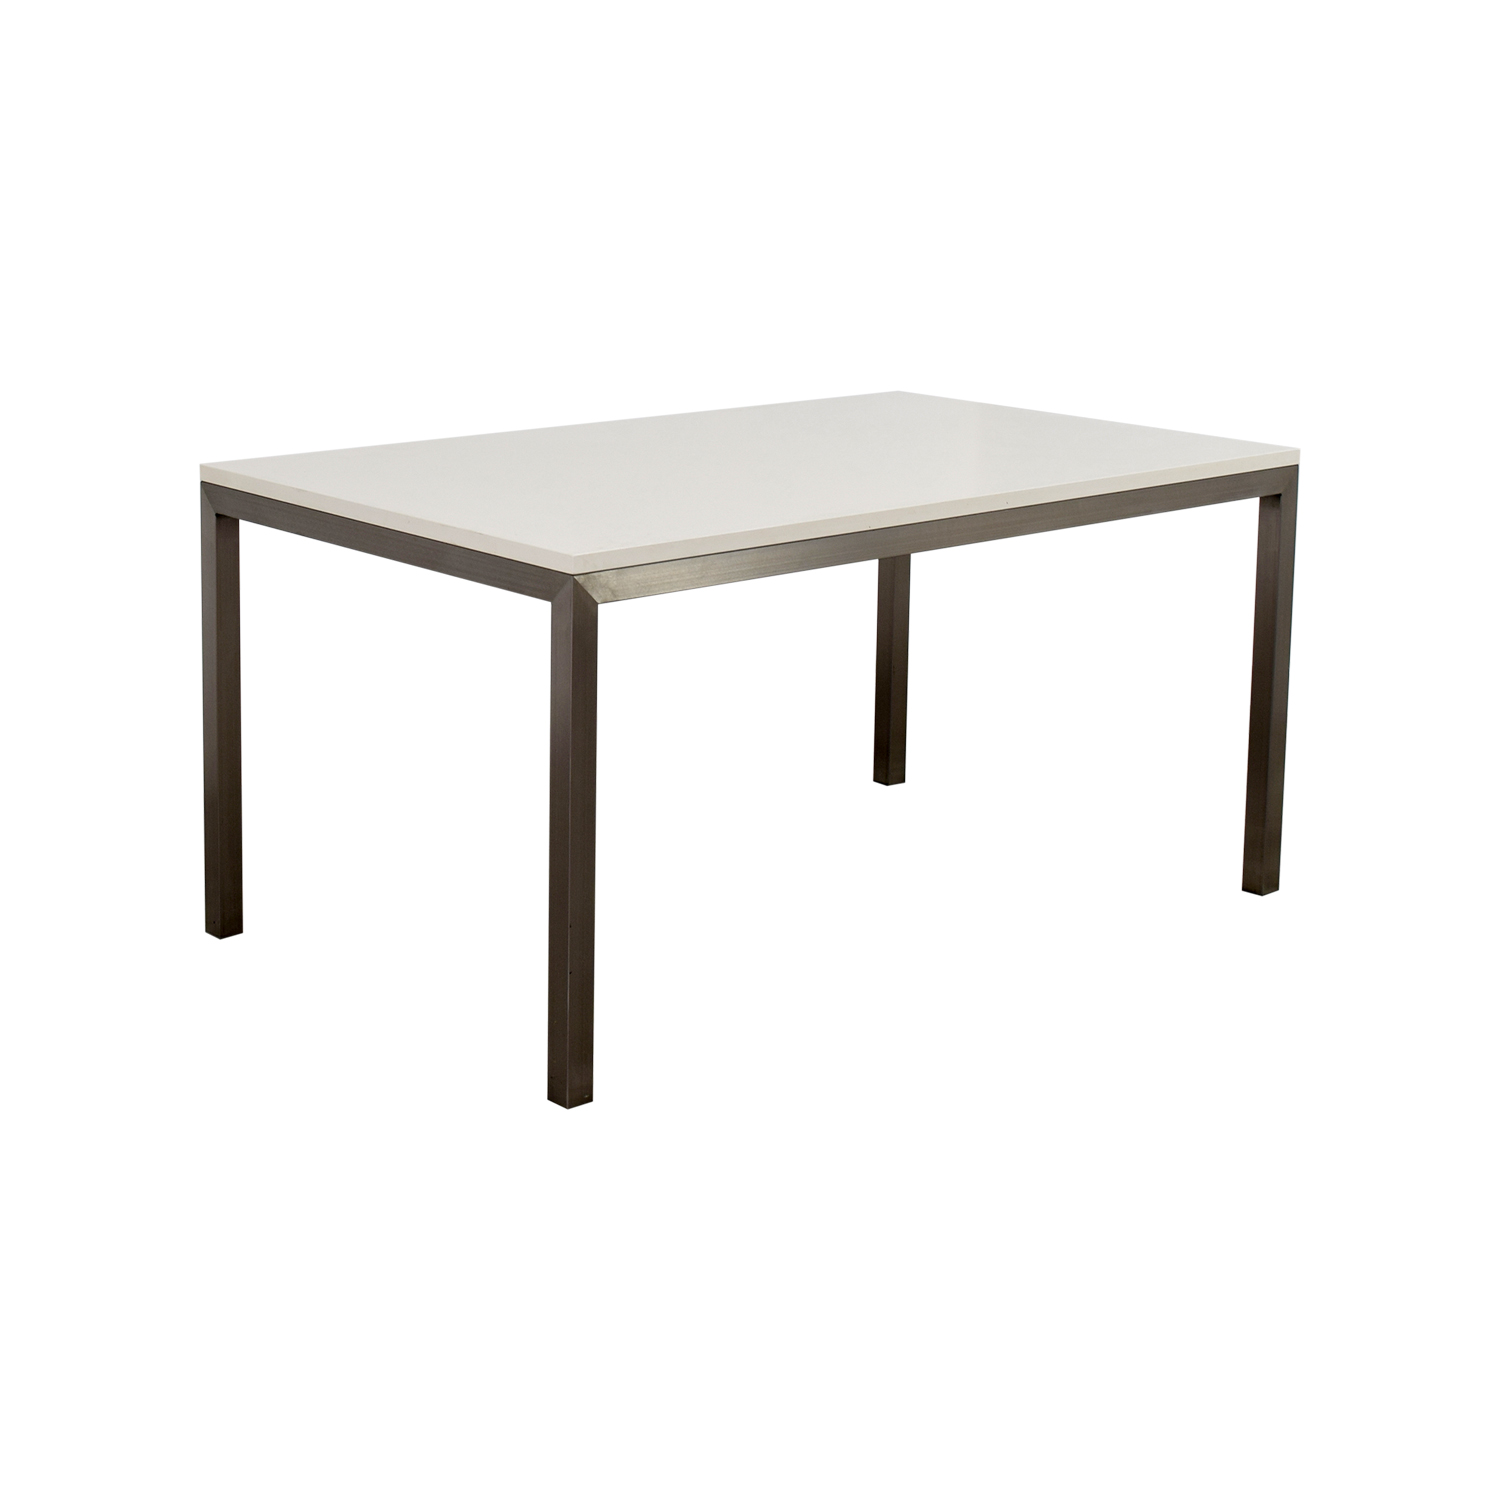 79 off crate barrel crate barrel parsons dining table tables - Crate and barrel parsons chair ...